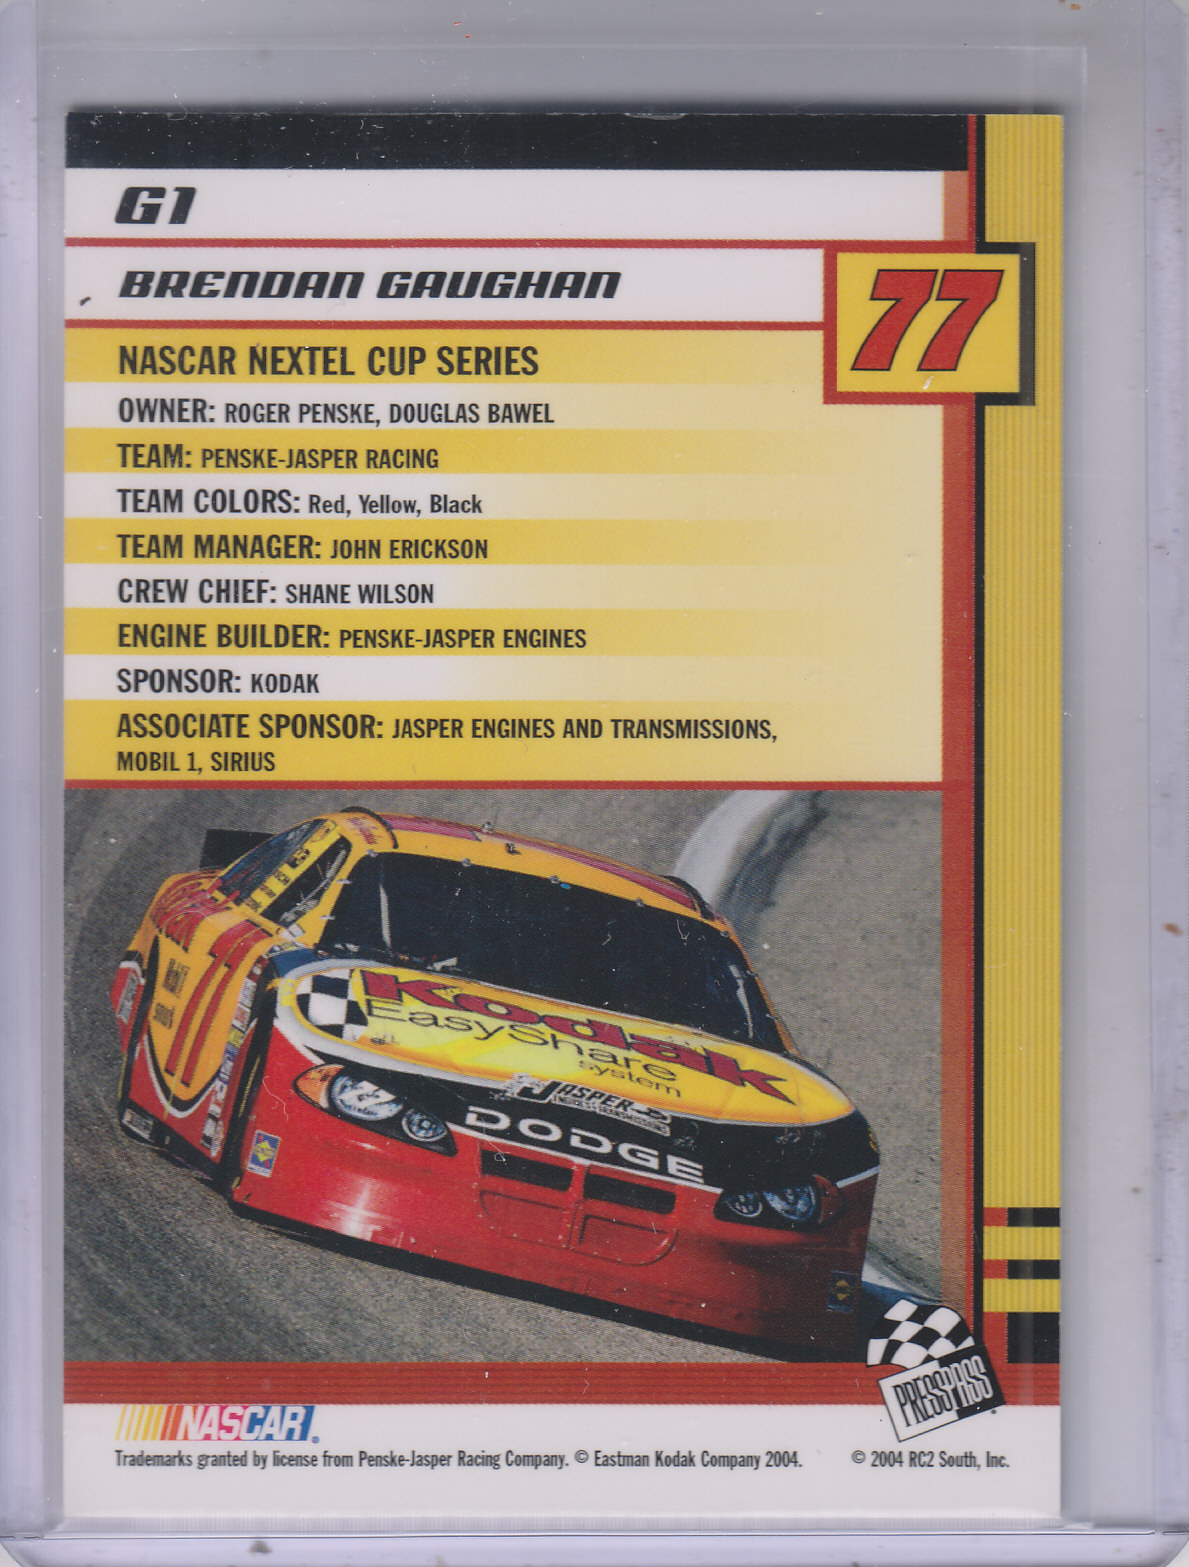 2004 Press Pass Trackside Golden #G1 Brendan Gaughan